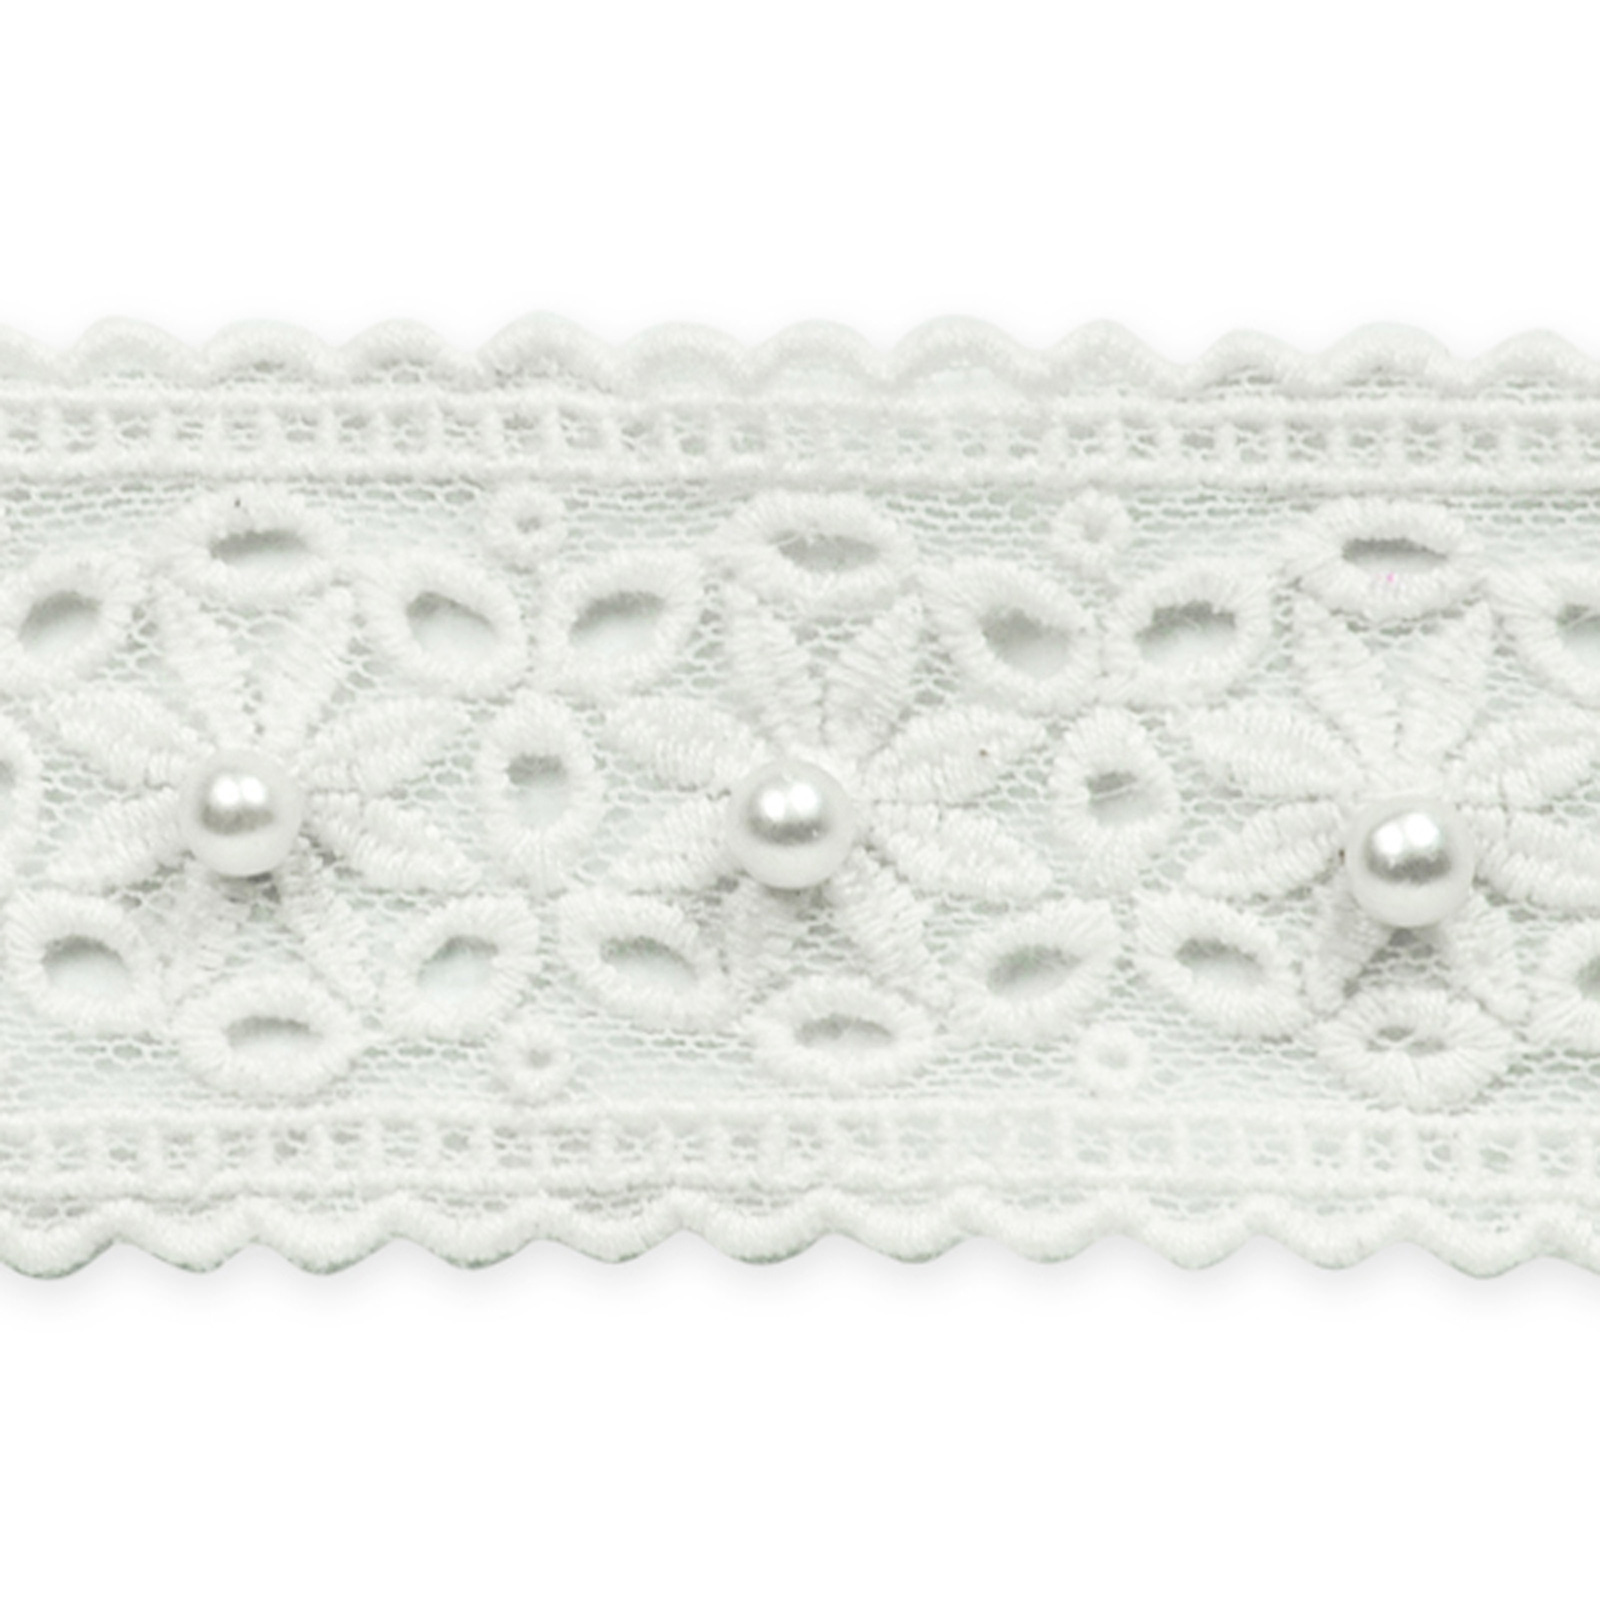 1 5/8: Daisy with Pearl Lace Trim White by Expo in USA